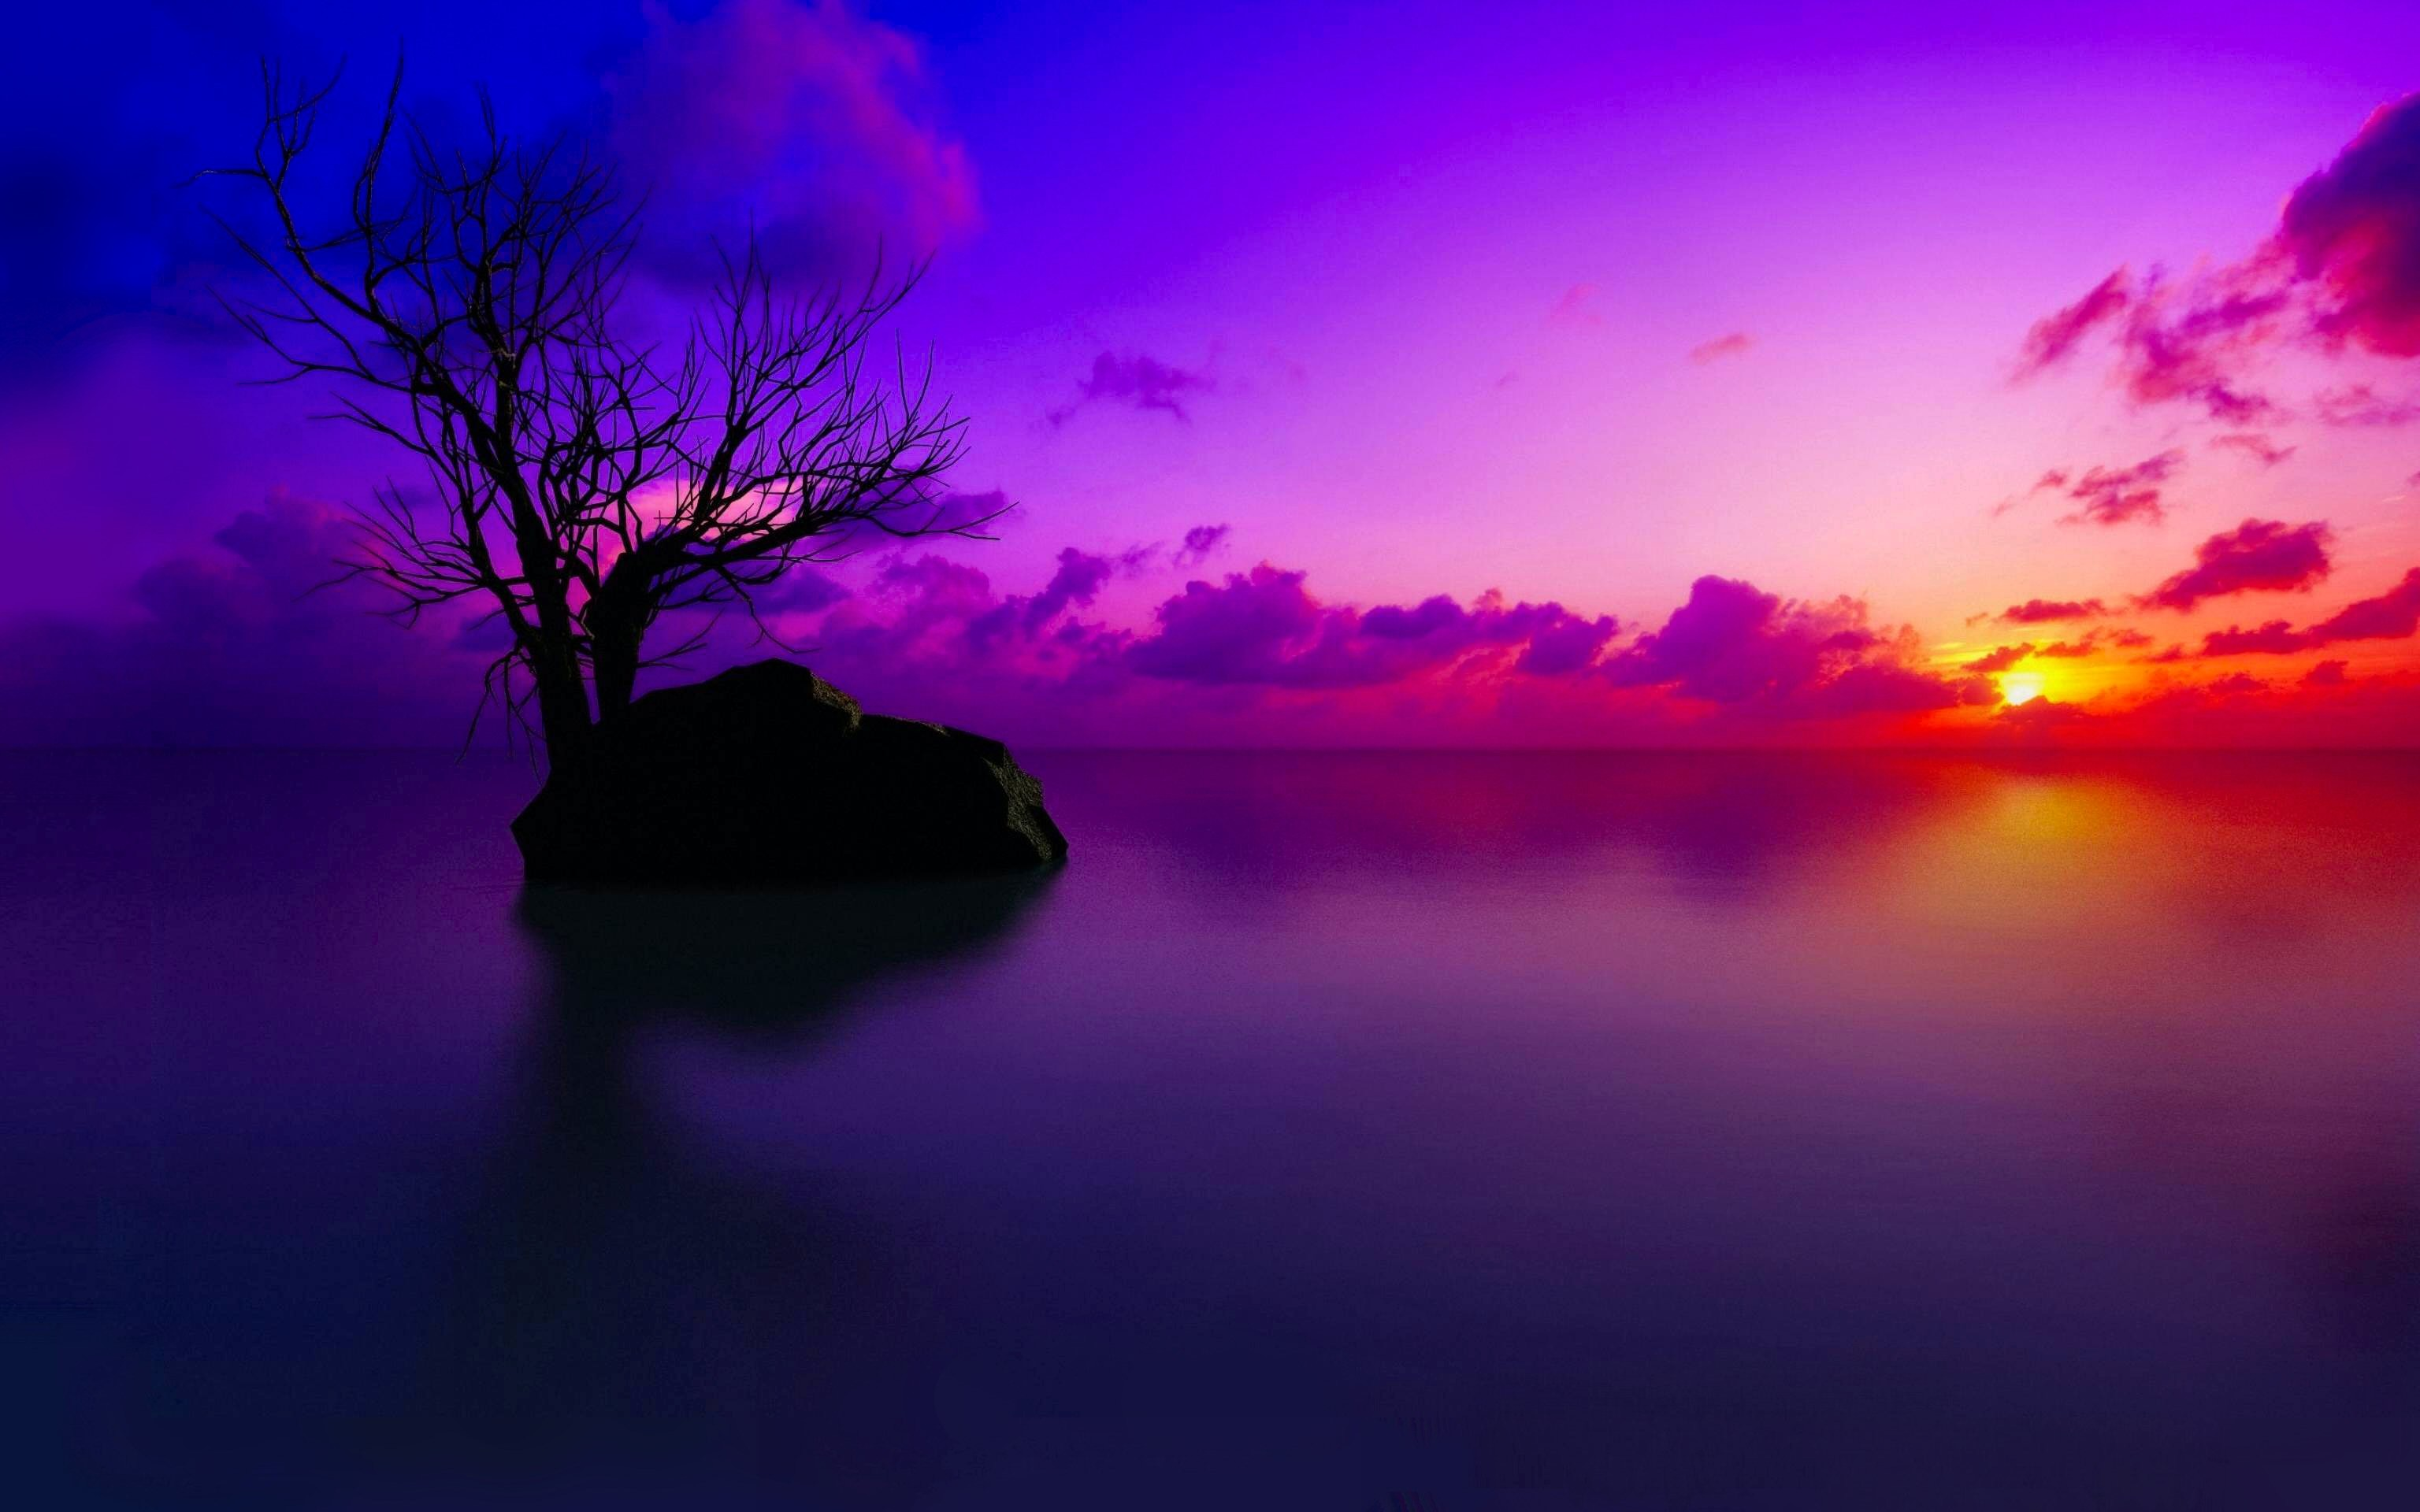 Fantasy Wallpaper 1920x1080 >> HD Sunset Wallpaper (72+ images)